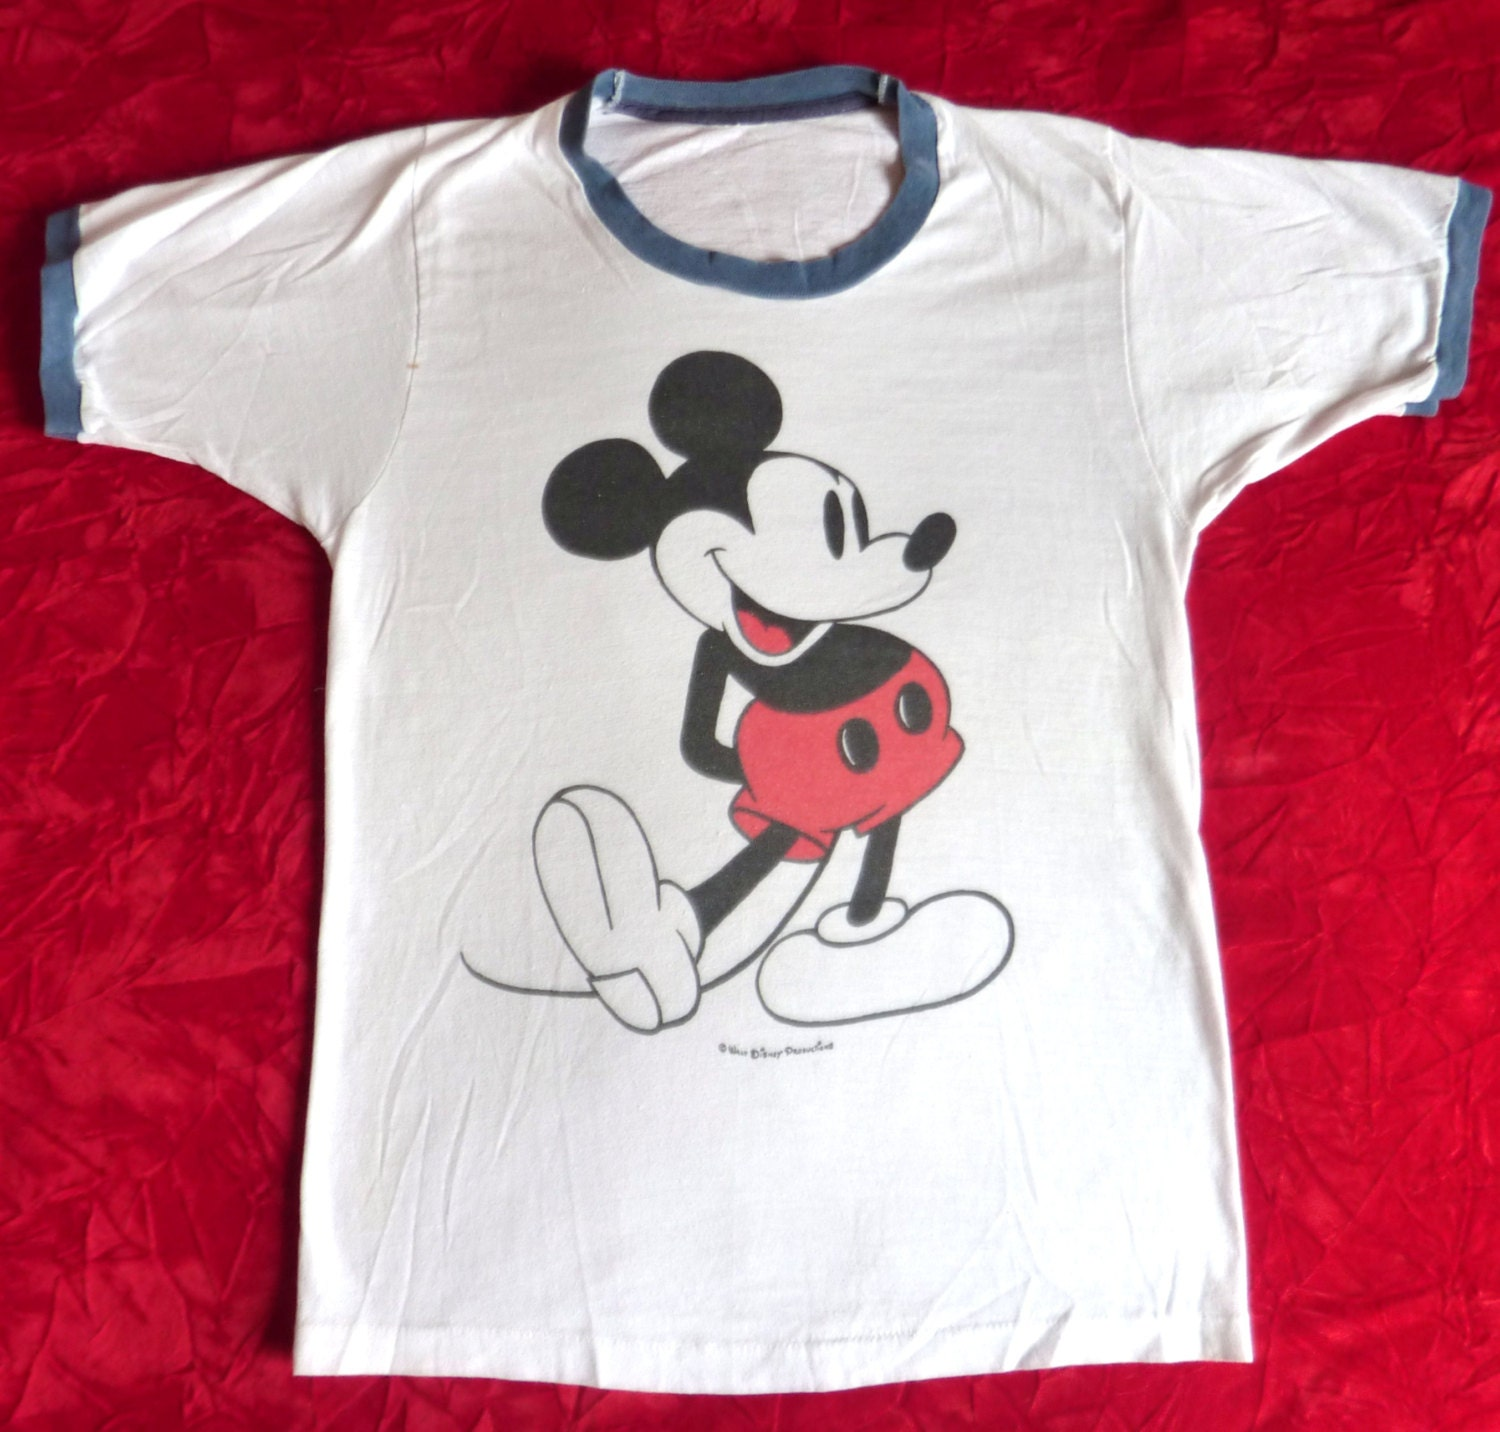 Guitar handbook Vintage mickey t shirt hinder